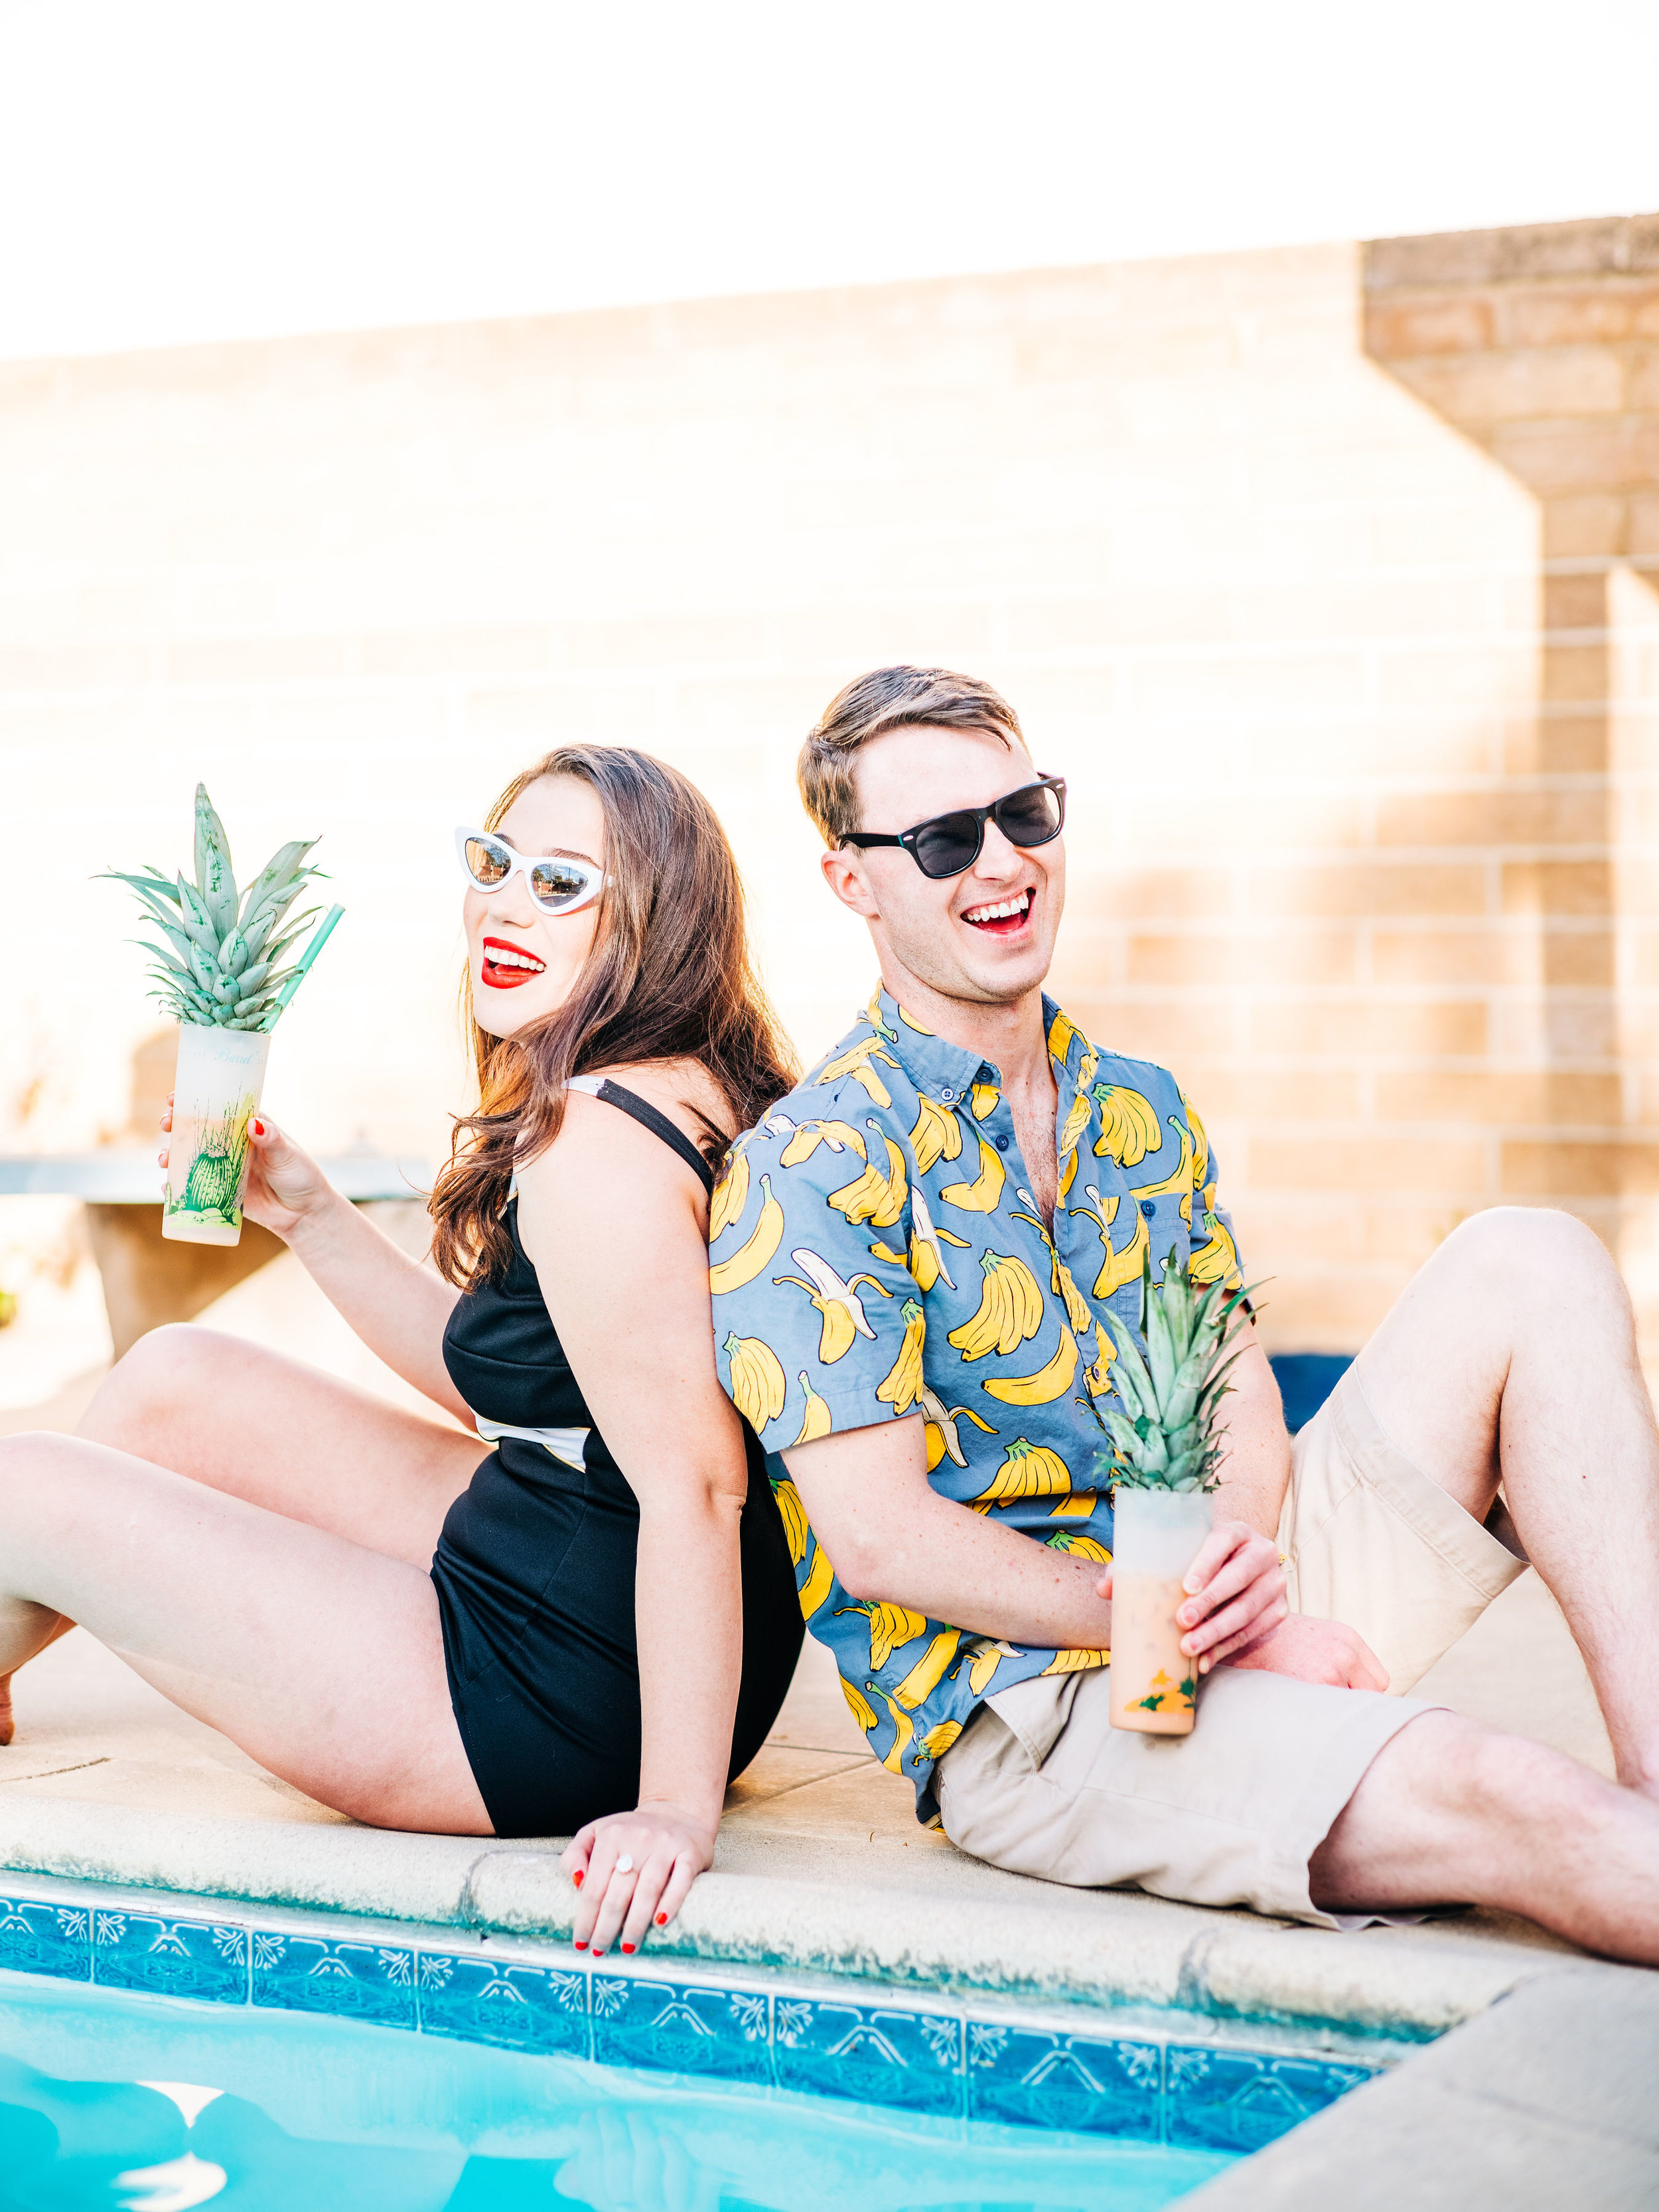 Andy-Shepard-Photography-Tucson-Pool-Party-66.jpg